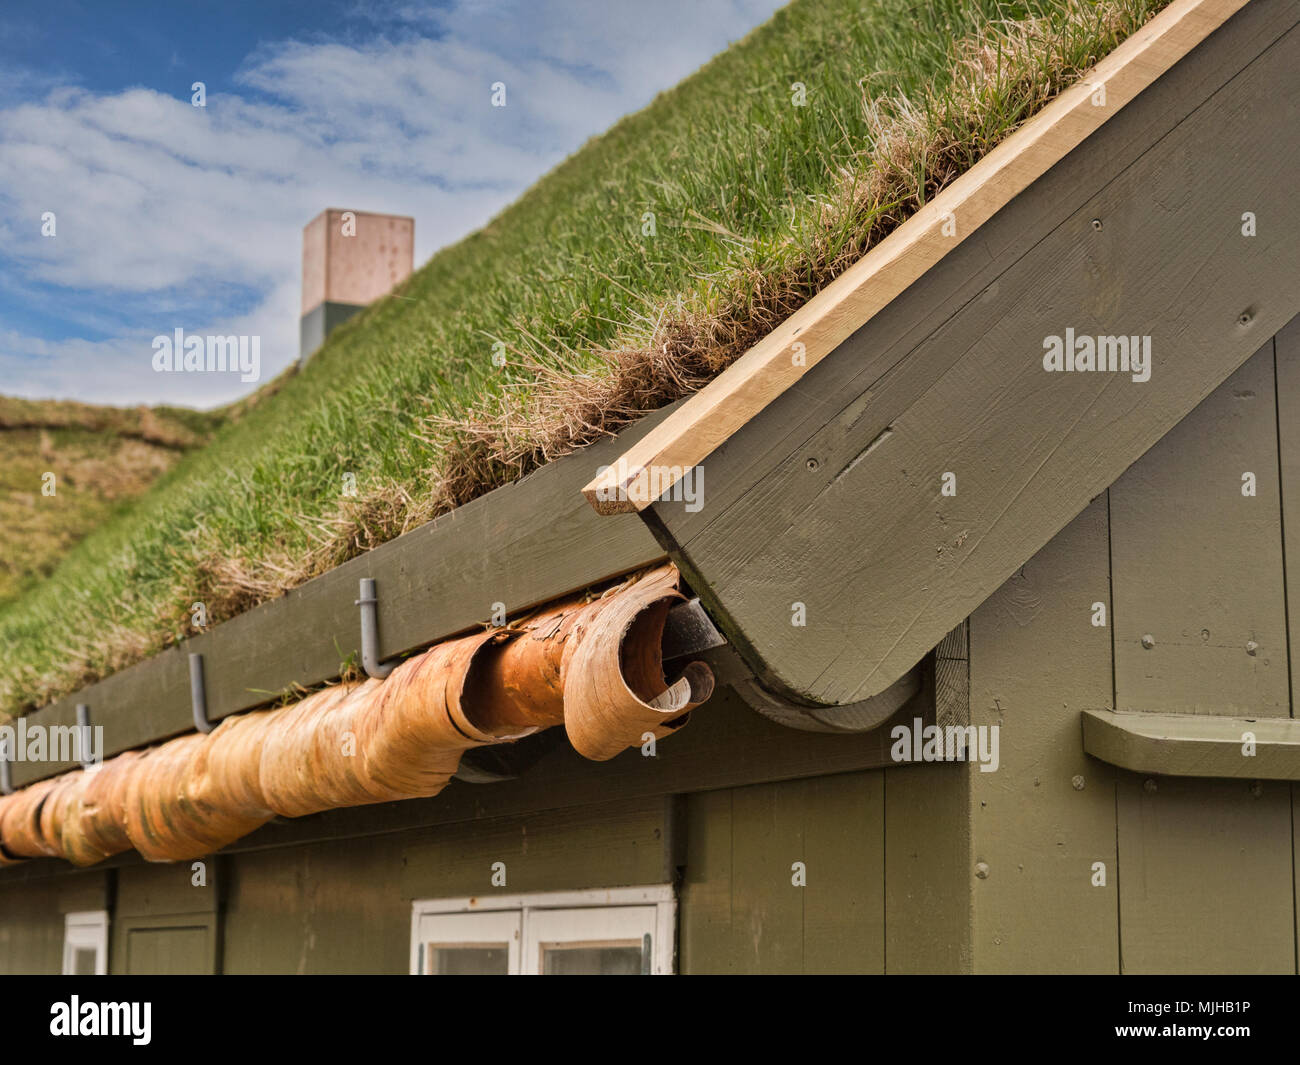 Detail of traditional grass or sod roofed wooden building in Torshavn, Faroe Islands, showing the construction. - Stock Image